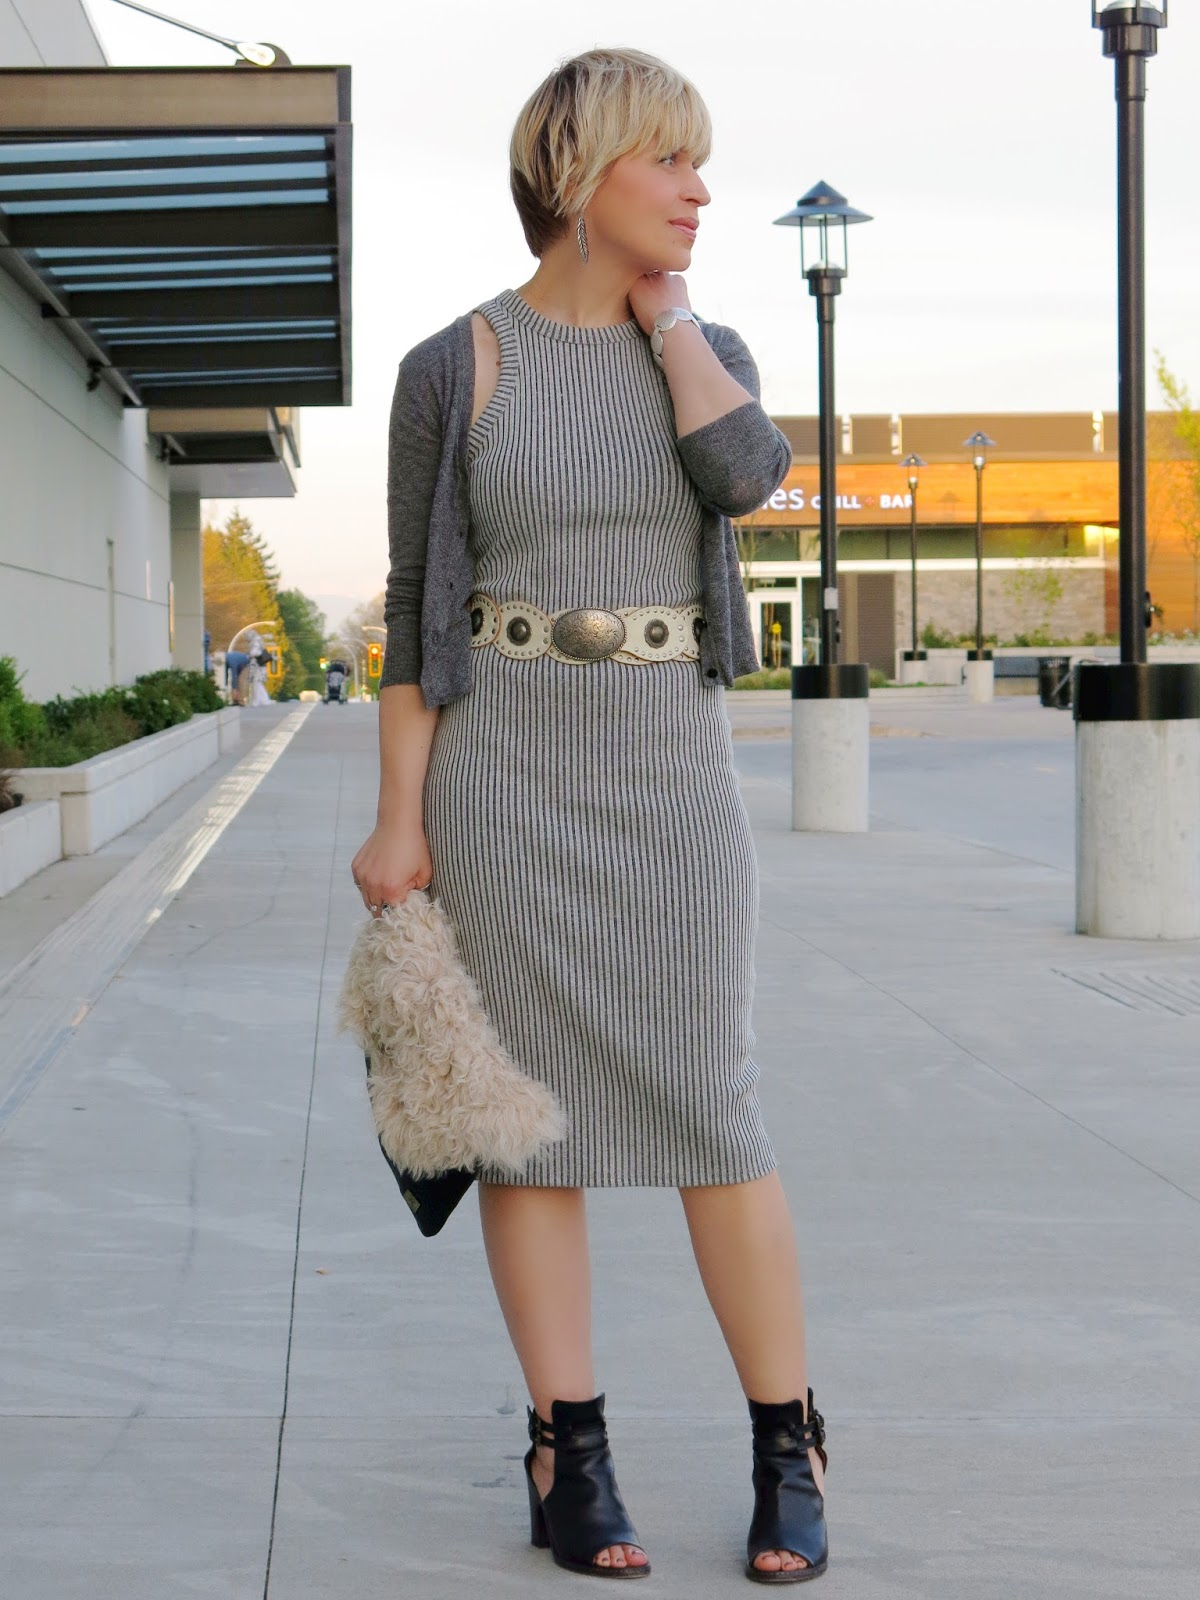 styling a tank dress with a shrunken cardigan, cut-out booties, and a furry clutch